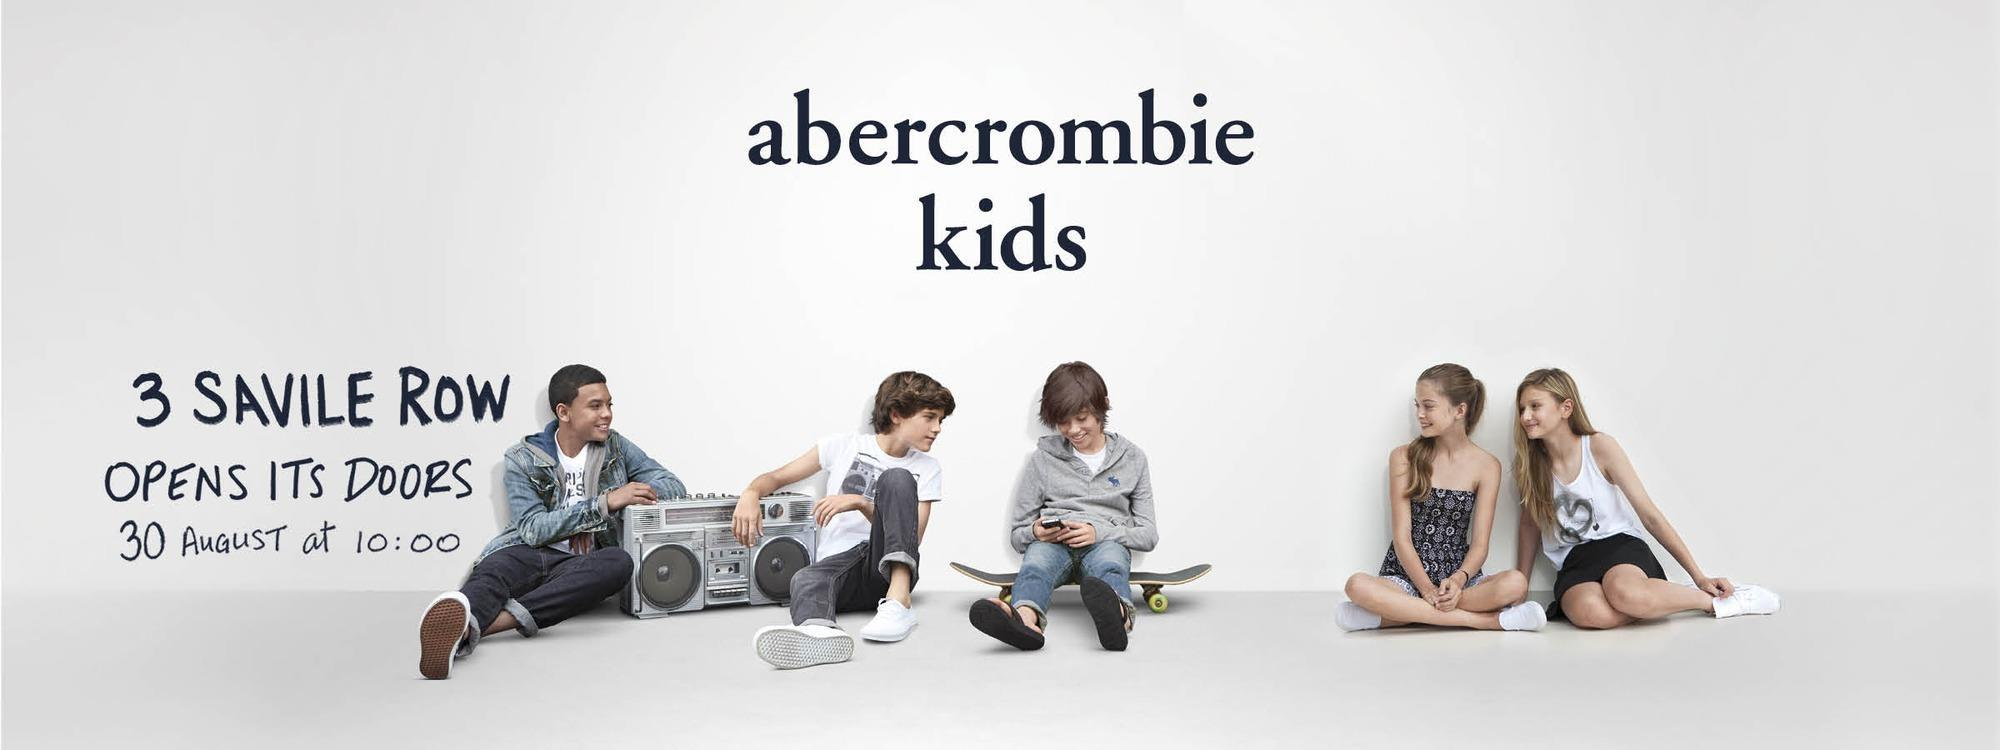 72a315413e Abercrombie Kids to open first UK store in Beatles' old home | News |  Retail Week